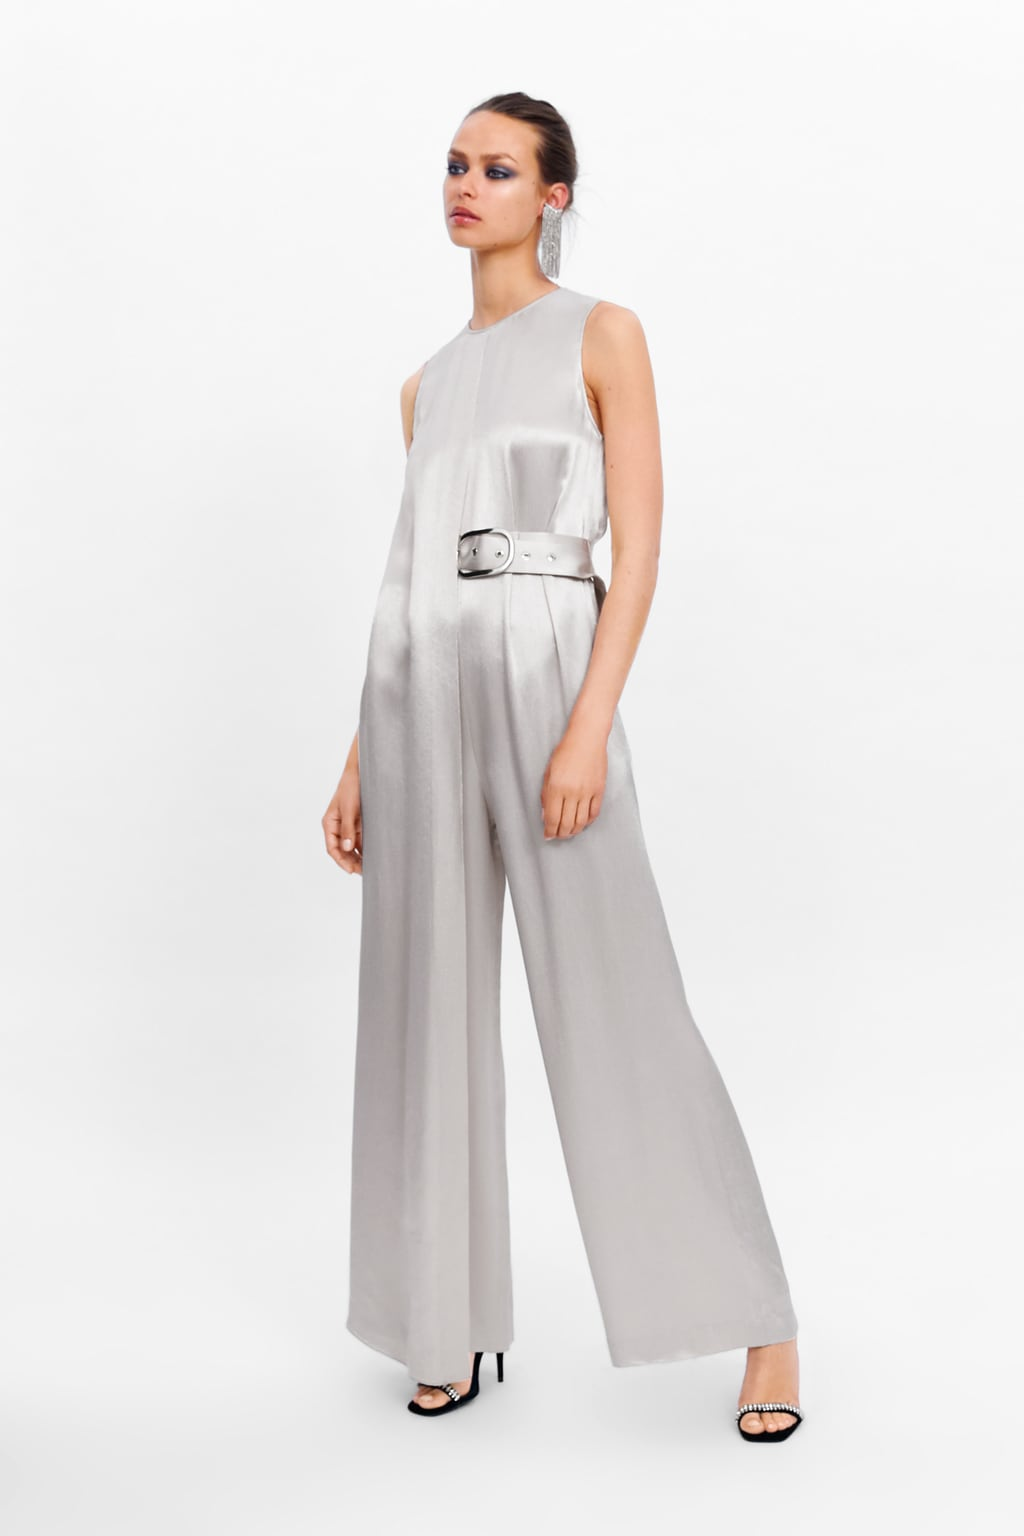 CHAMPAGNEBELTED JUMPSUIT - 89.99 GBP